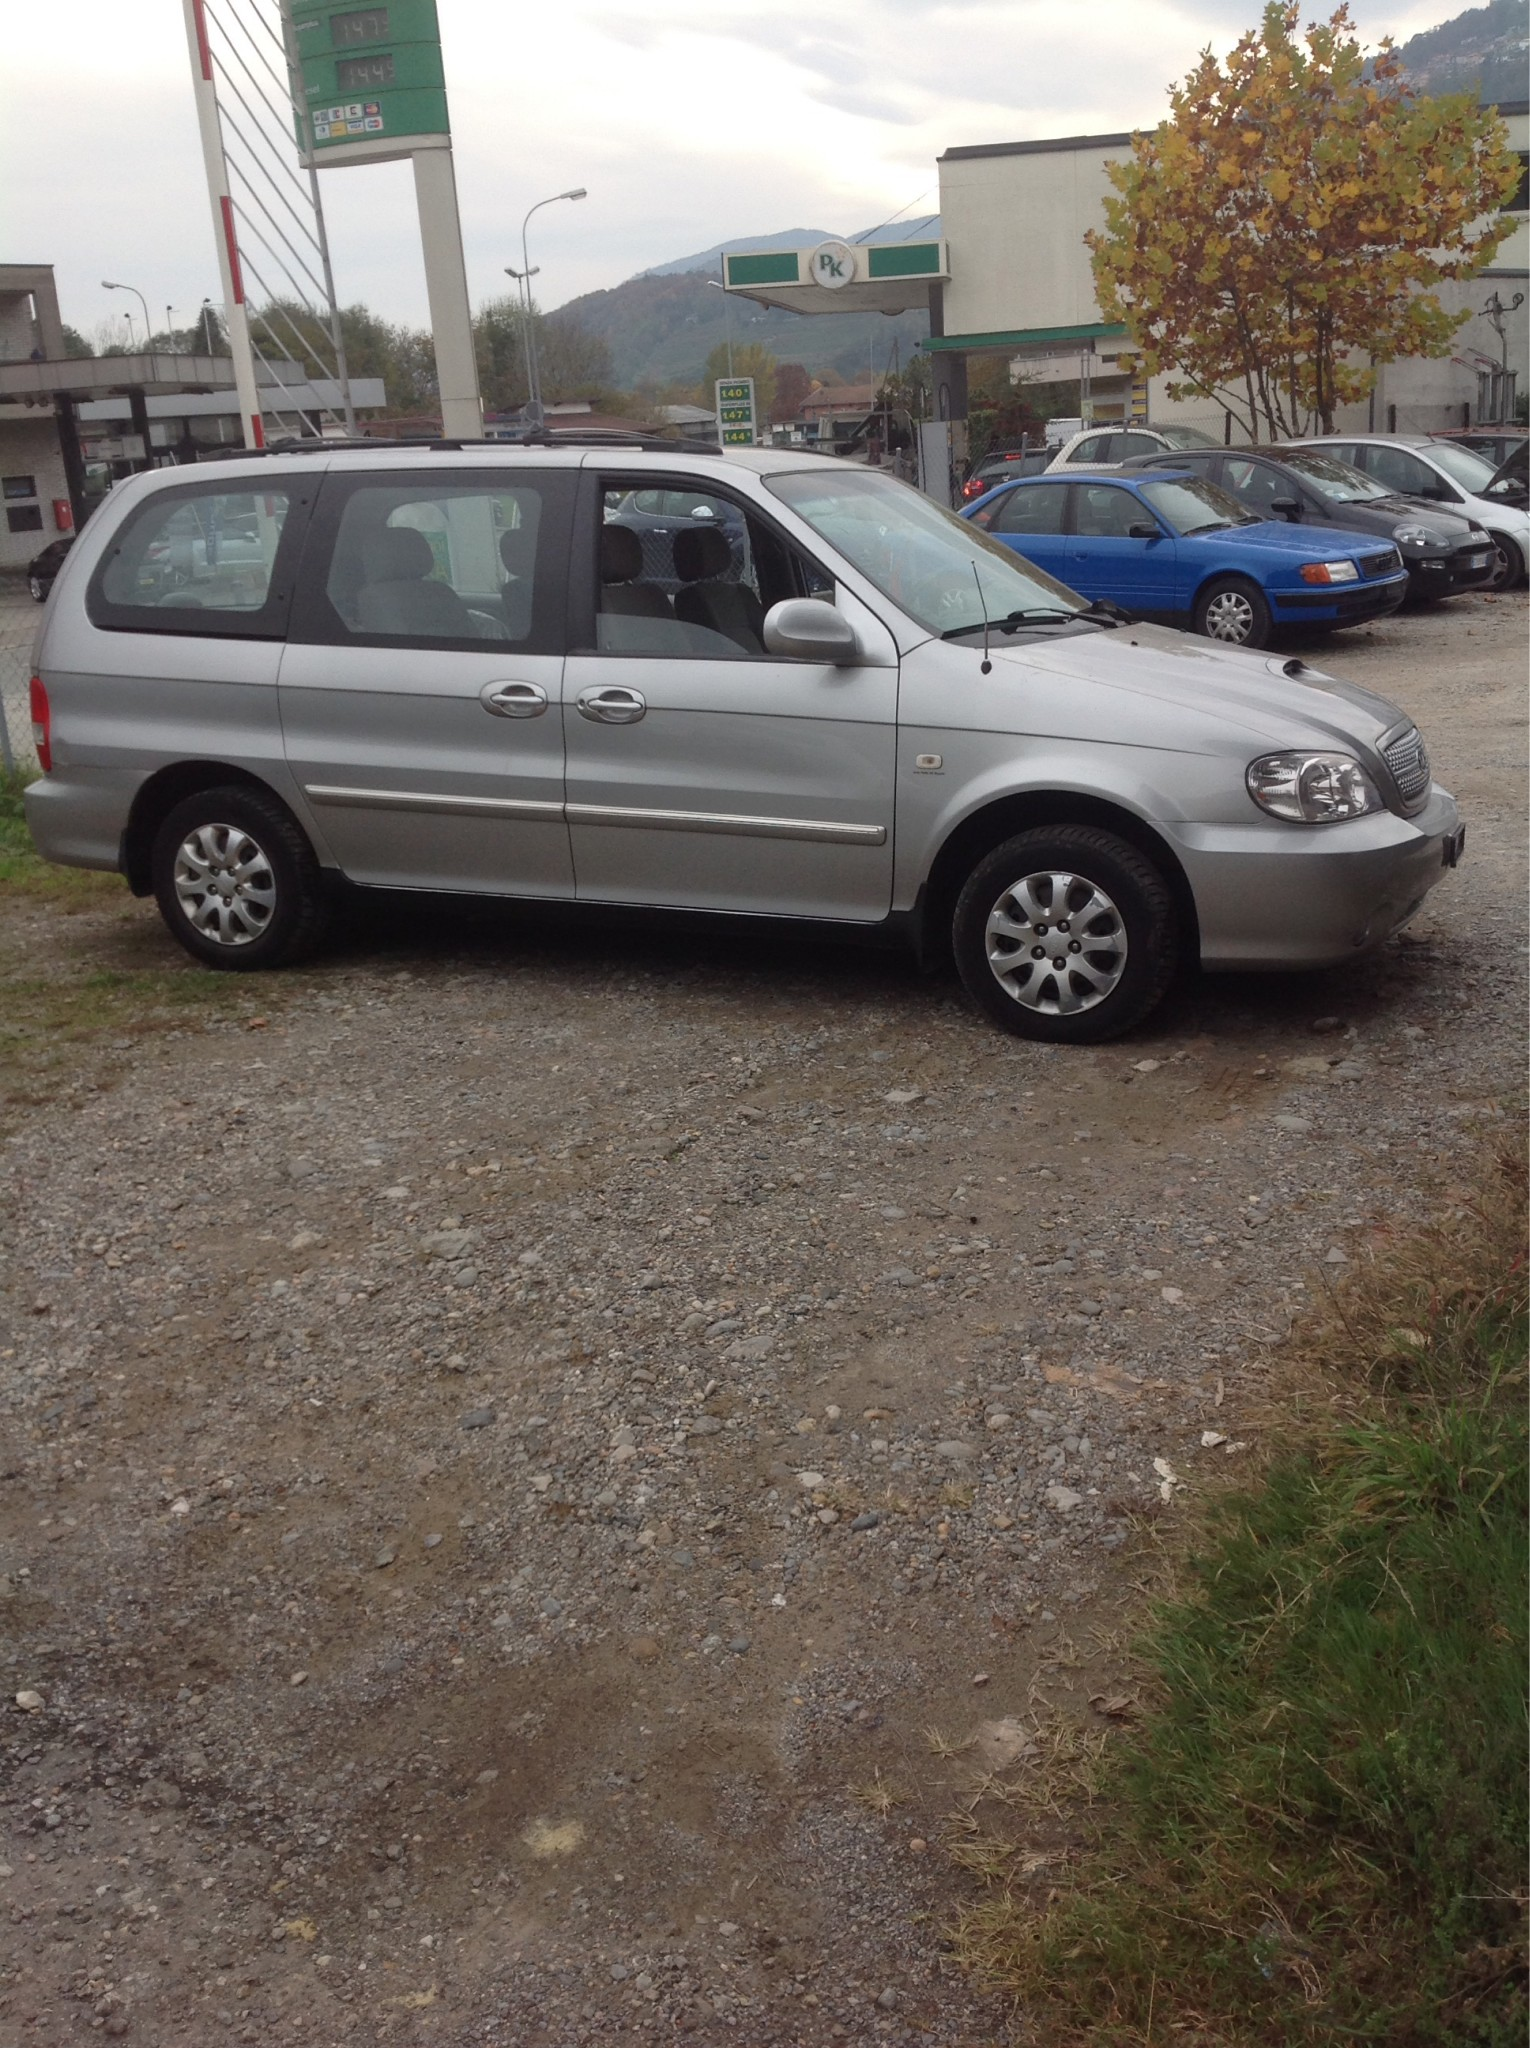 bus Kia Carnival 2.9 turbo diesel vendo . Collaudata 12/03/2020